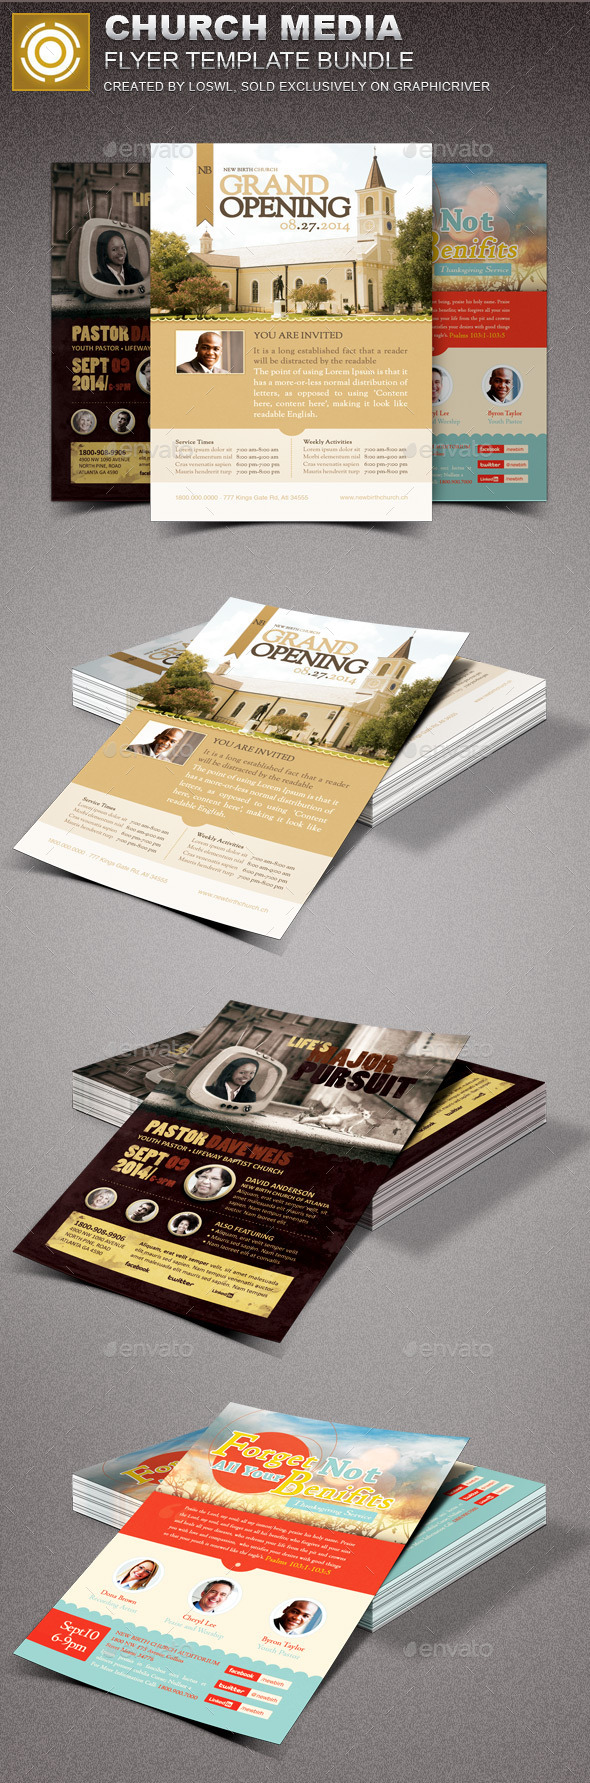 Church Media Flyer Template Bundle